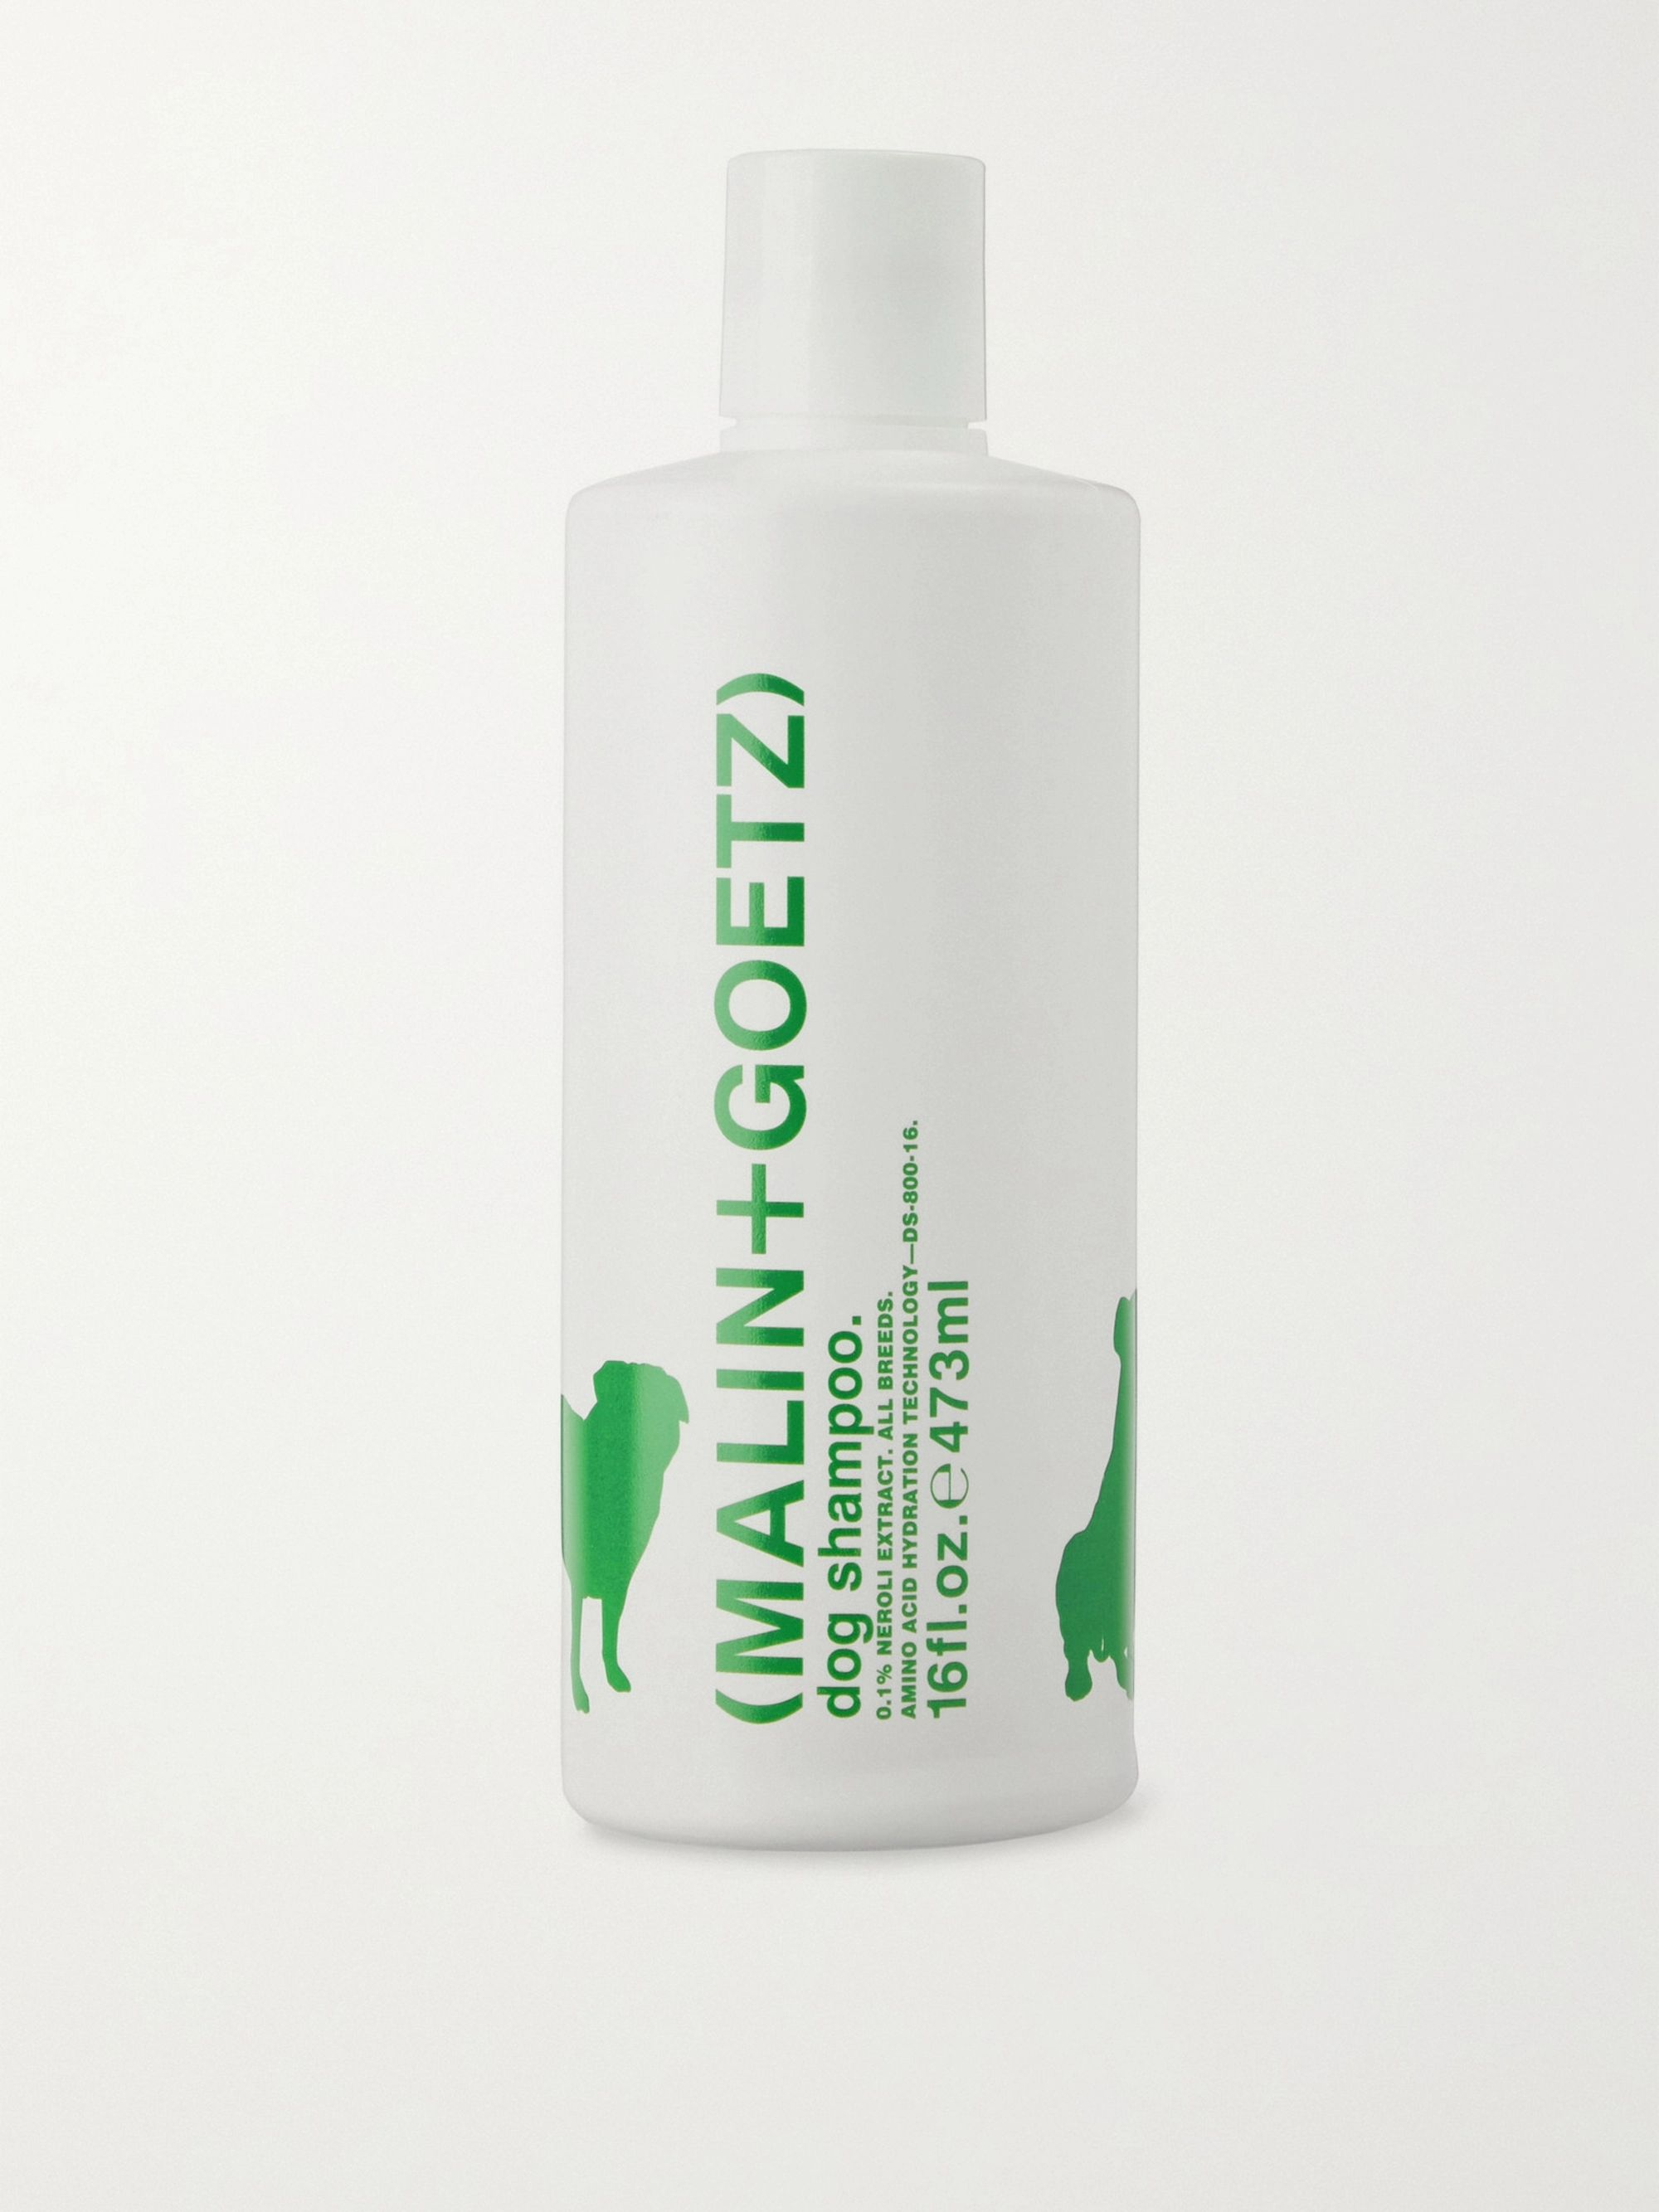 Malin + Goetz Dog Shampoo, 473ml